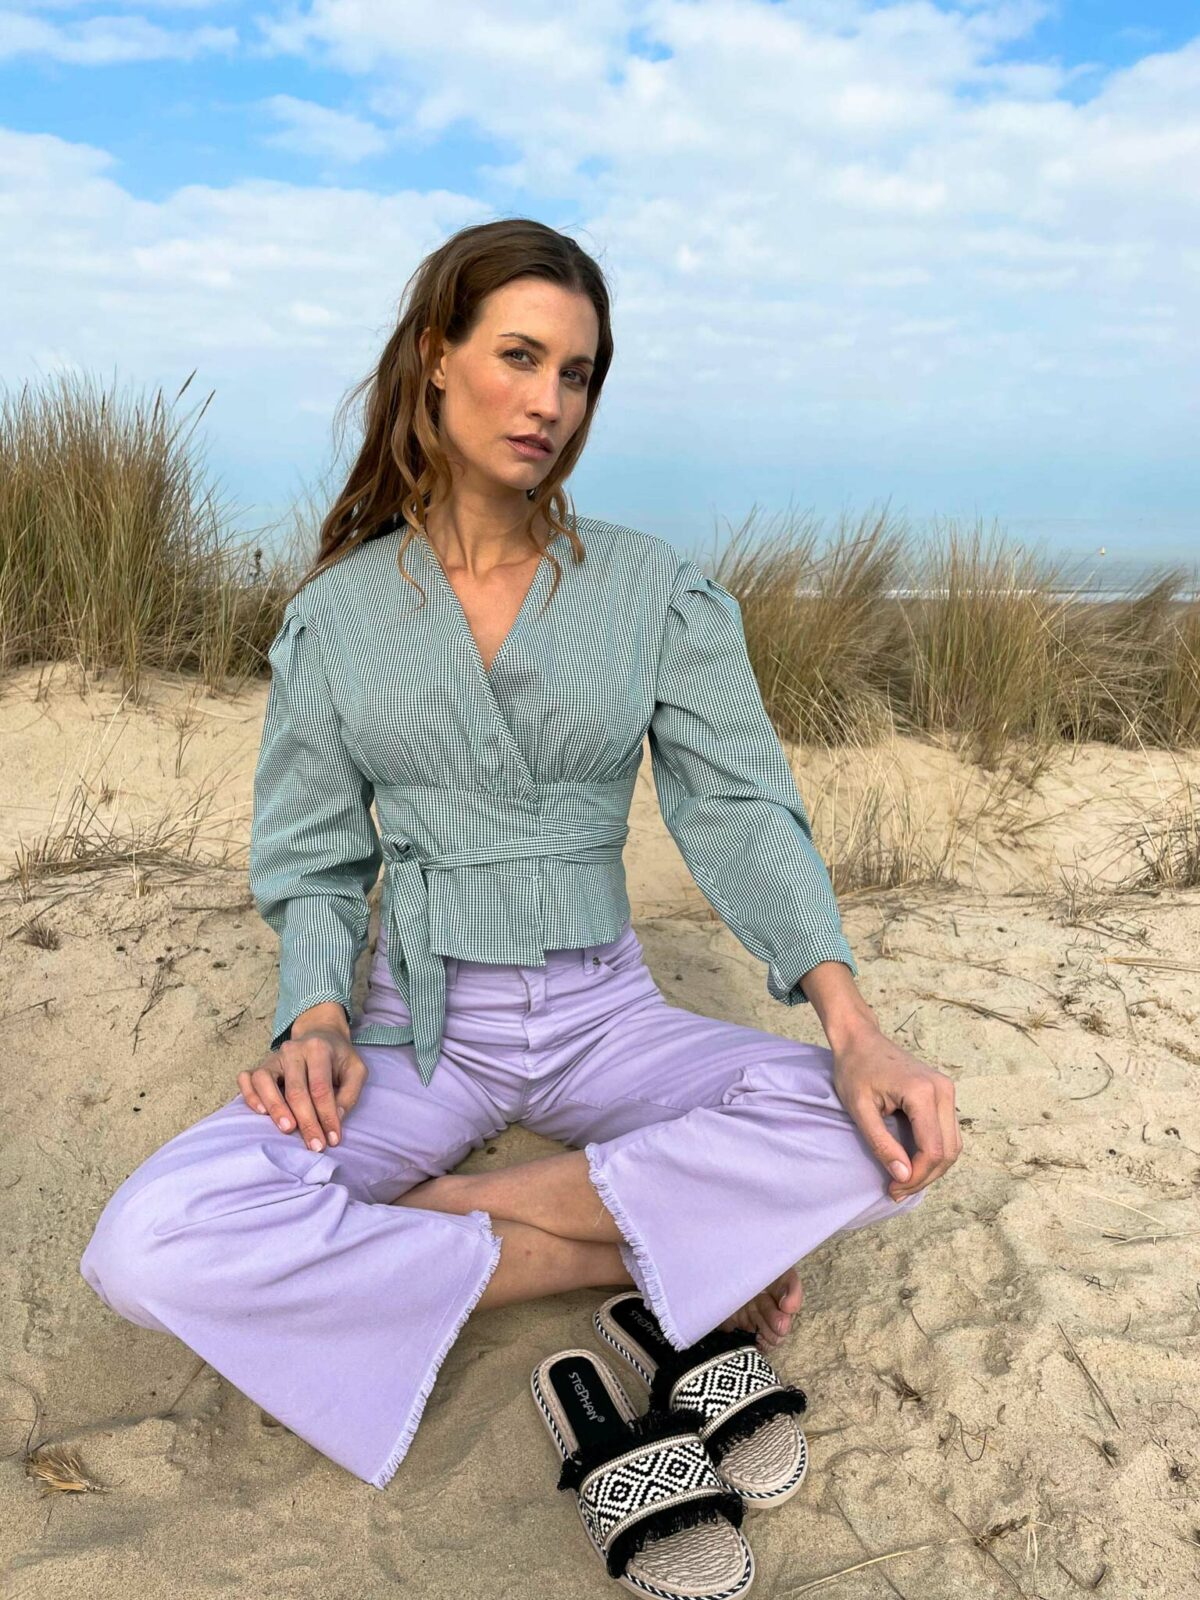 woman sitting down wearing a green top and lilac pants